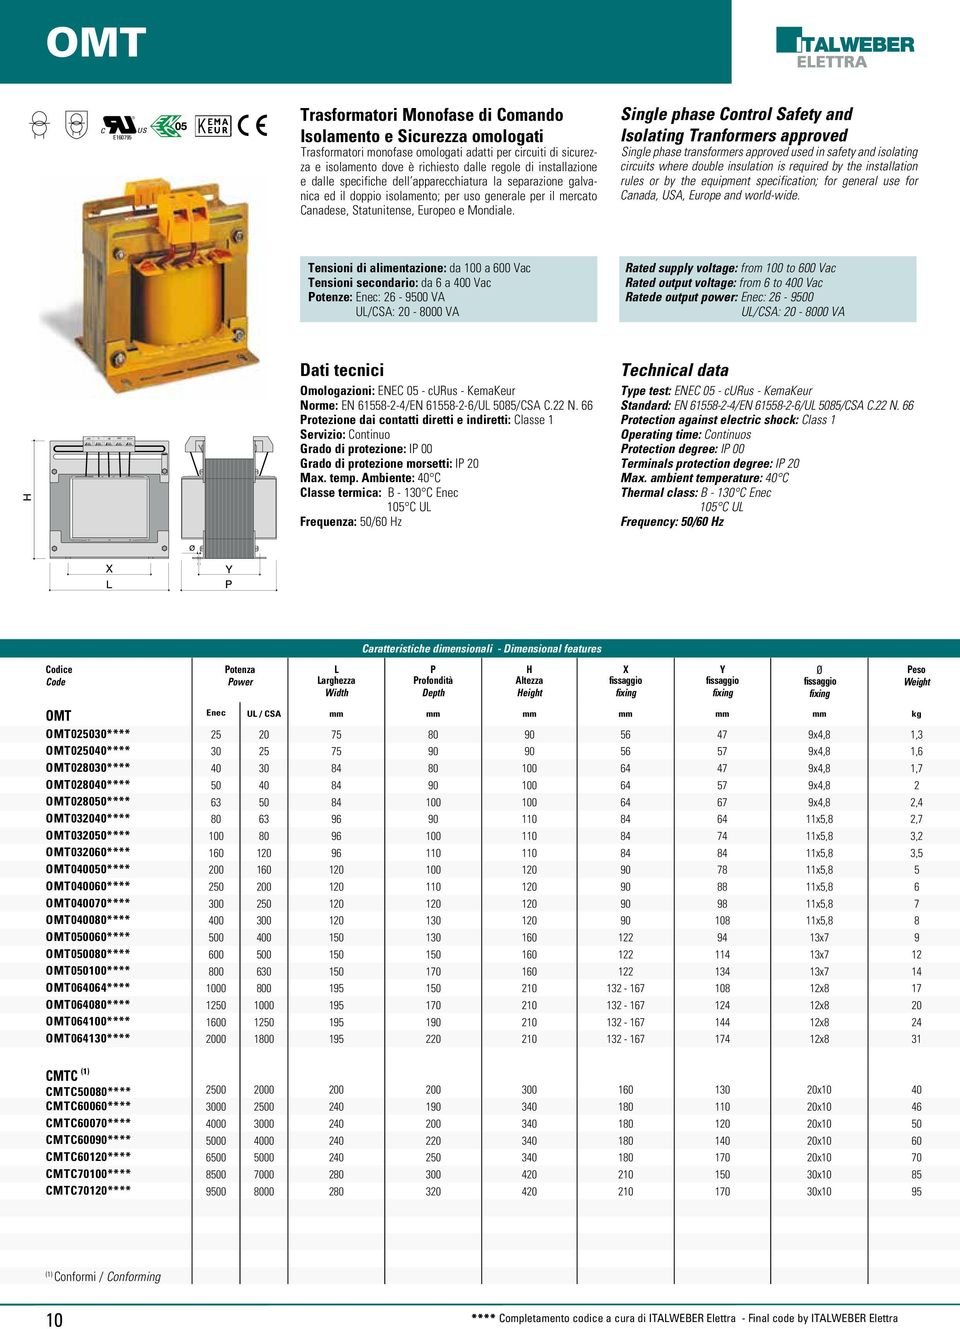 Single phase Control Safety and Isolating Tranformers approved Single phase transformers approved used in safety and isolating circuits where double insulation is required by the installation rules